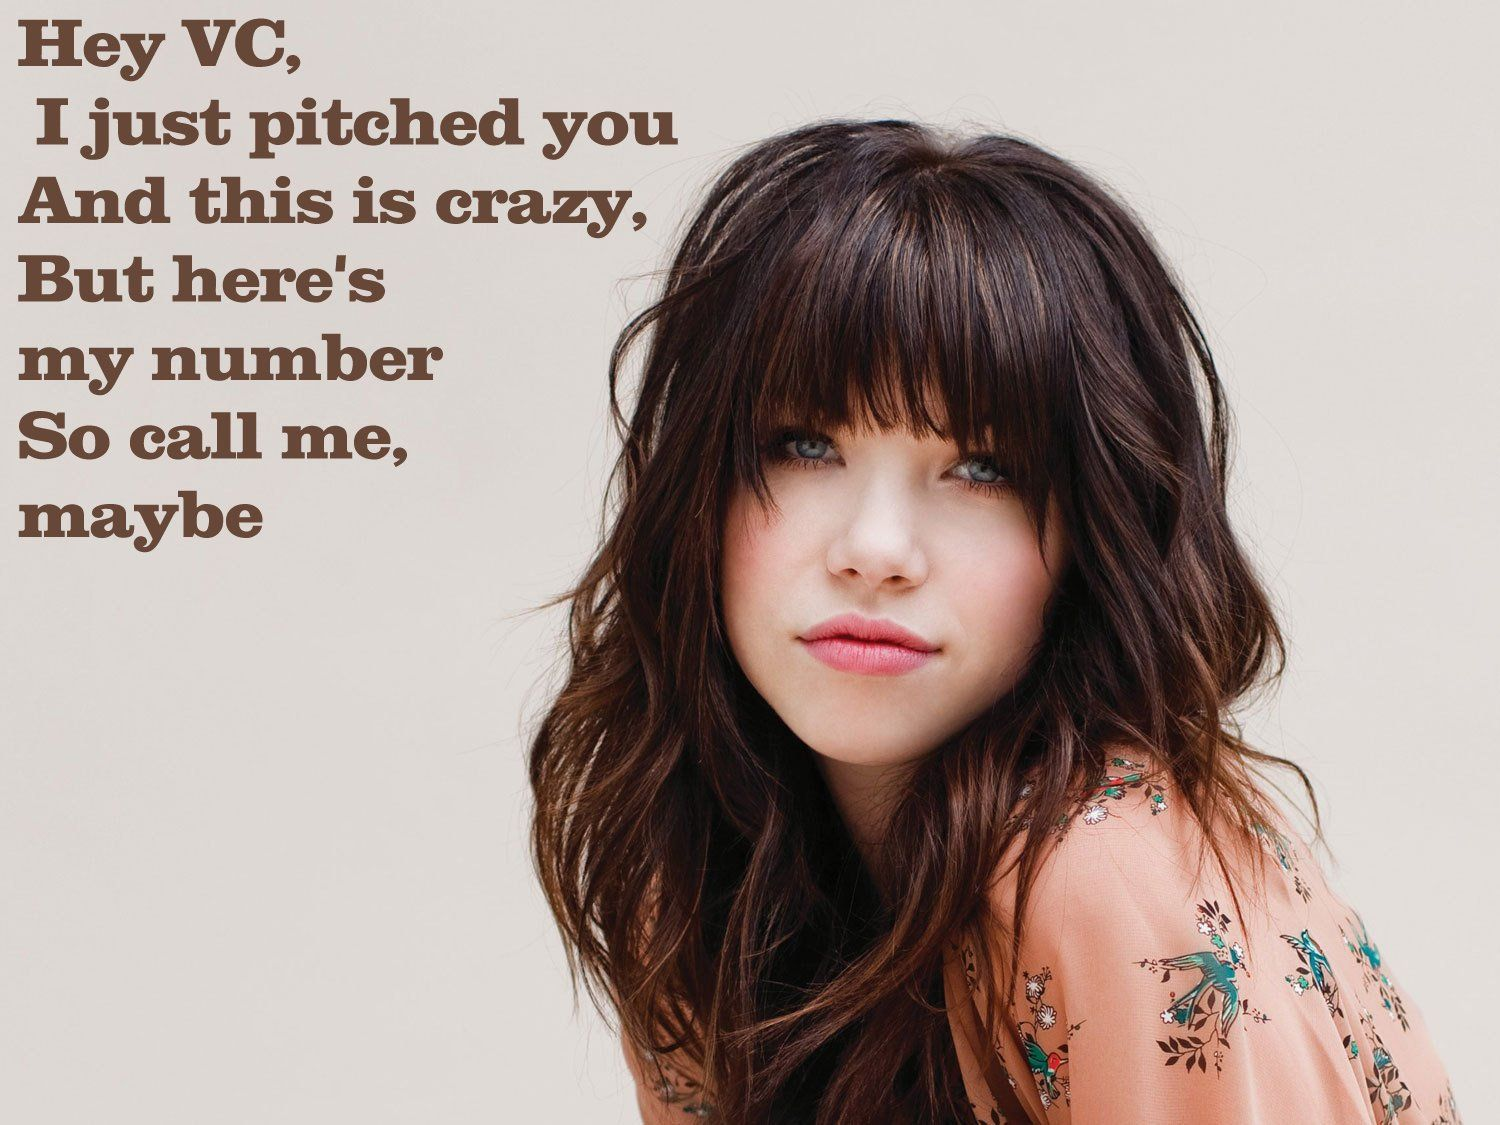 Hey VC, I just pitched you, and this is crazy -- but here's my number, so call me, maybe...